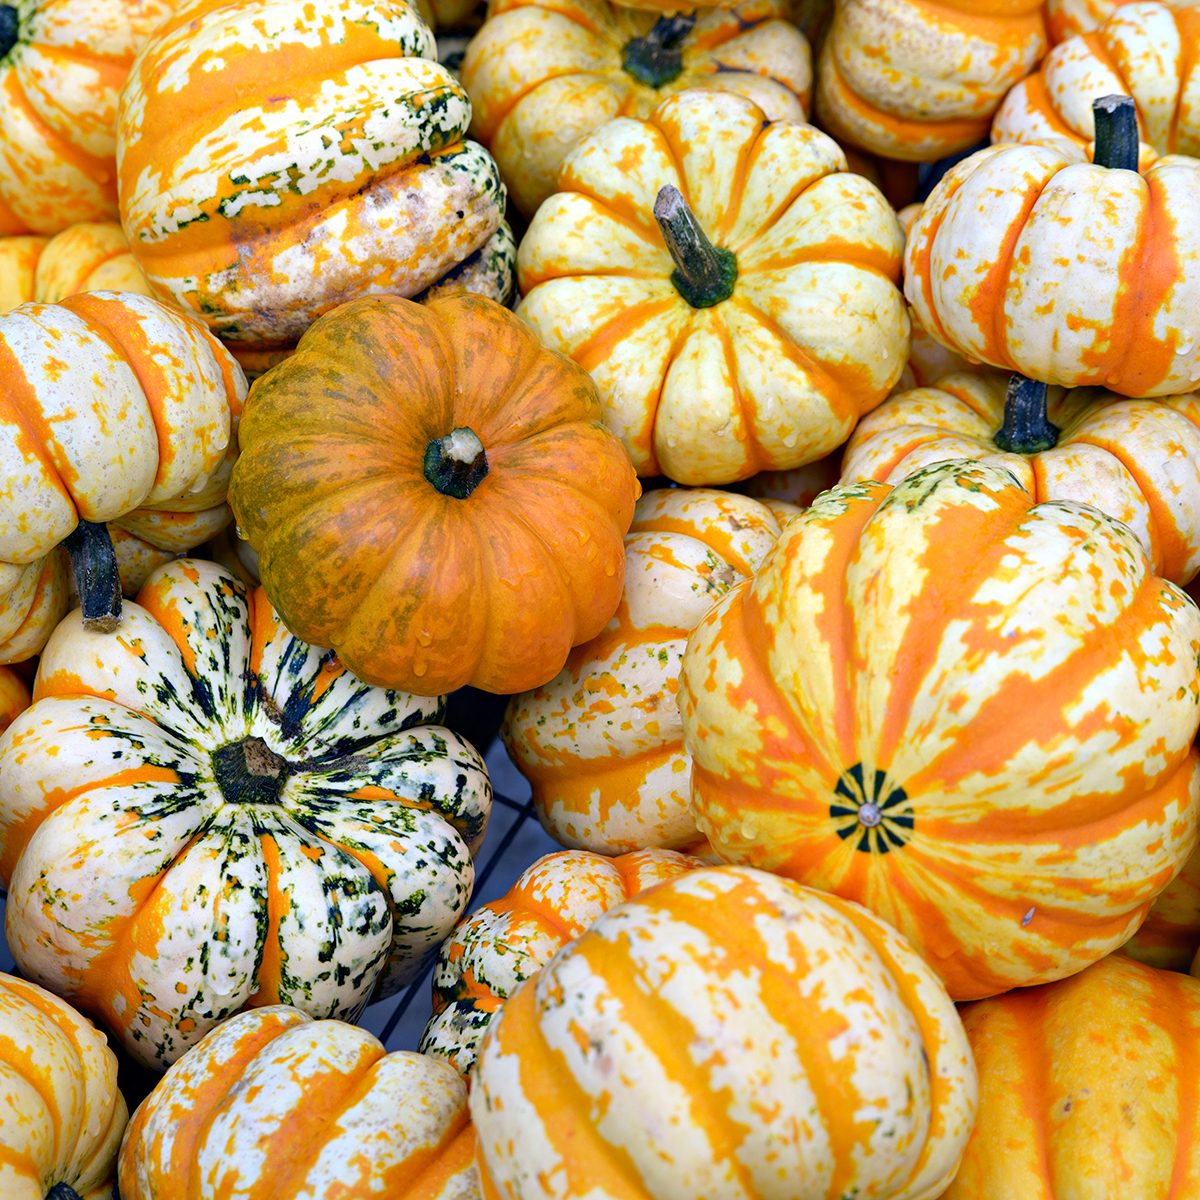 A detailed close up of white and orange striped carnival dumpling squash in a pile. A great background image.